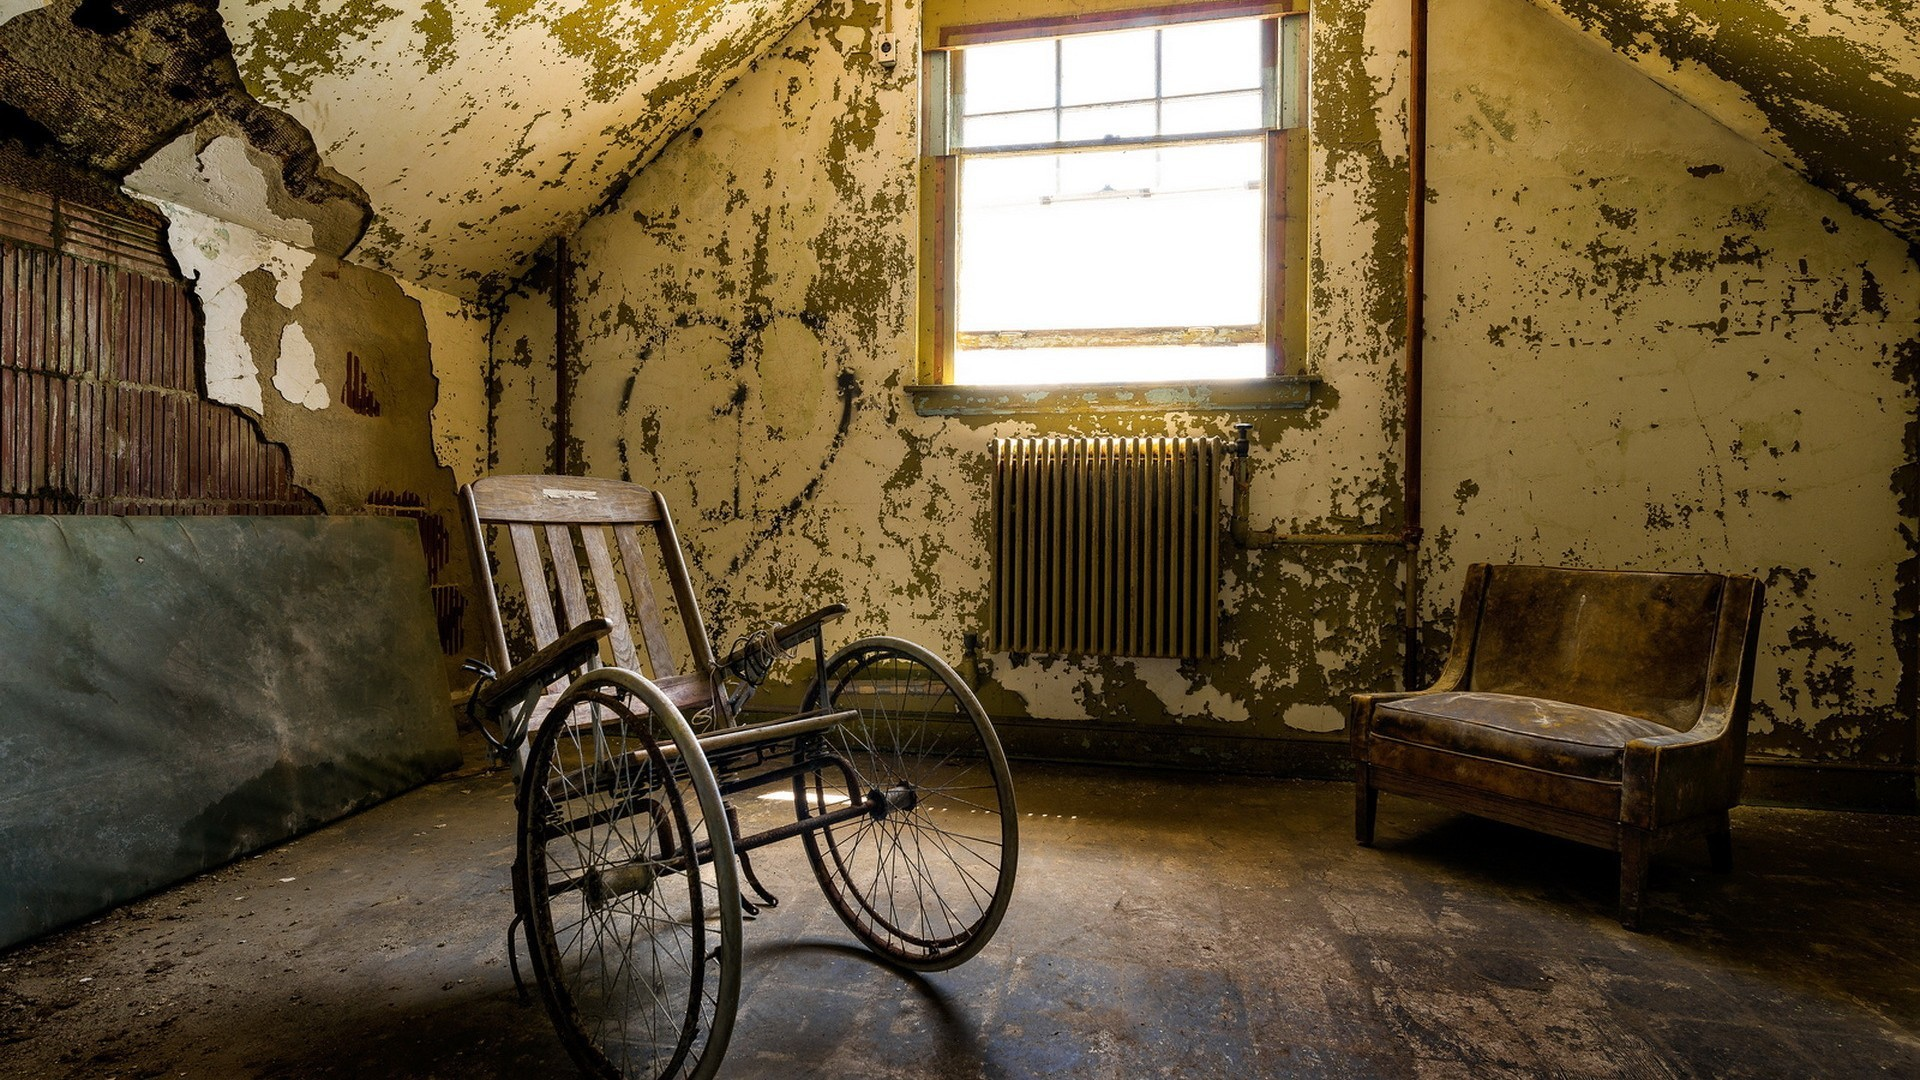 Empty wheelchair in an abandoned house wallpapers and images ...